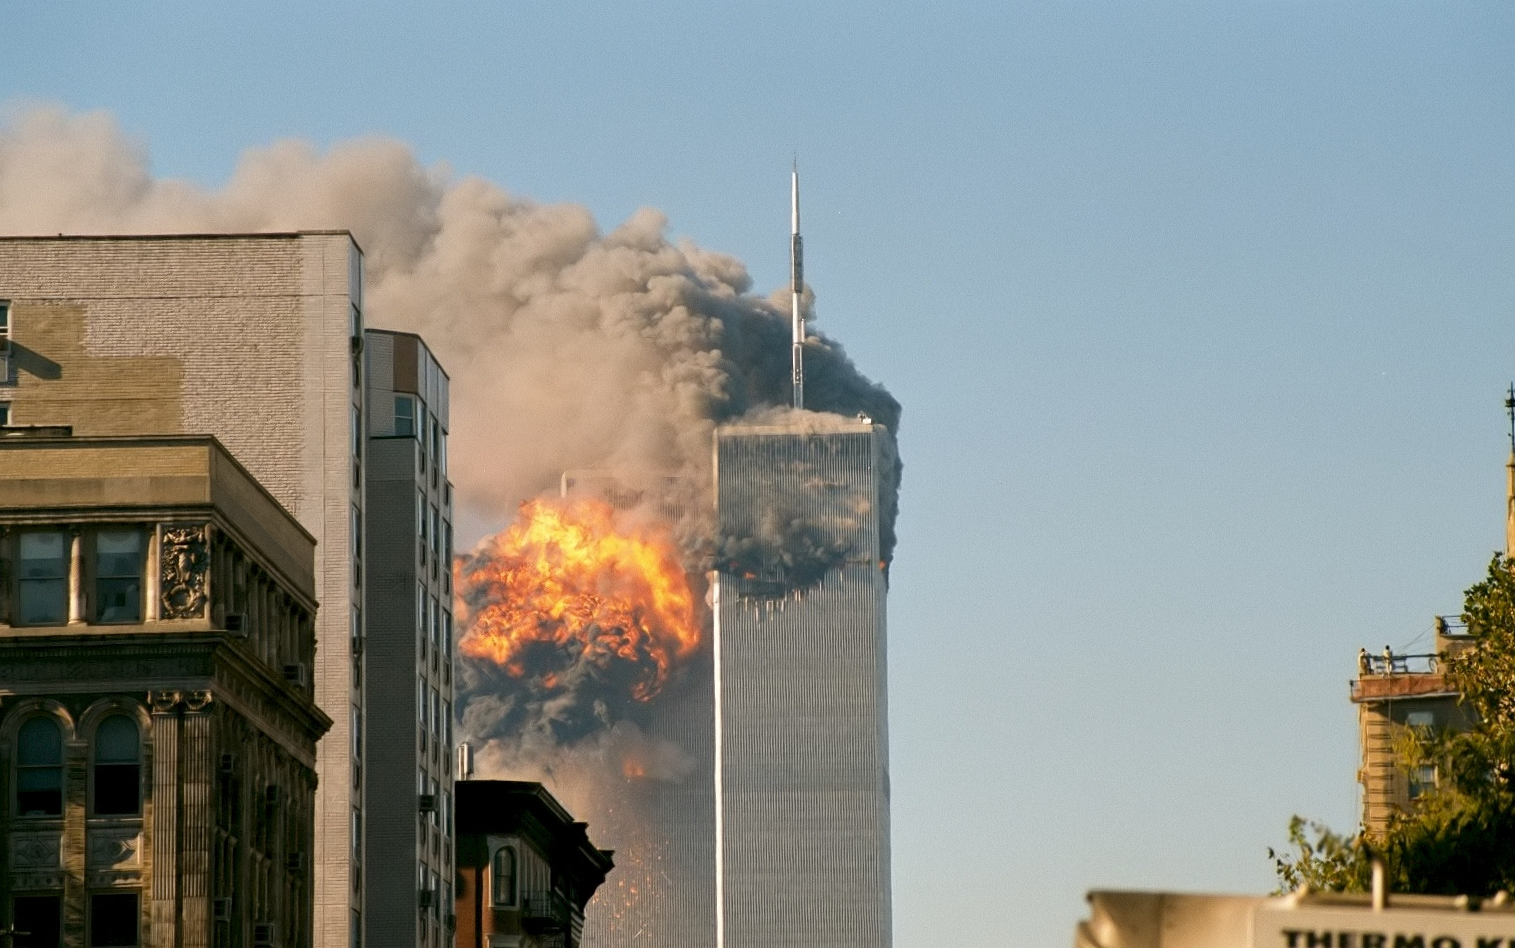 Flames billow as United Airlines Flight 175 crashes into the south tower of the World Trace Center on Tuesday, Sept. 11, 2001. (Source: Wikimedia Commons)